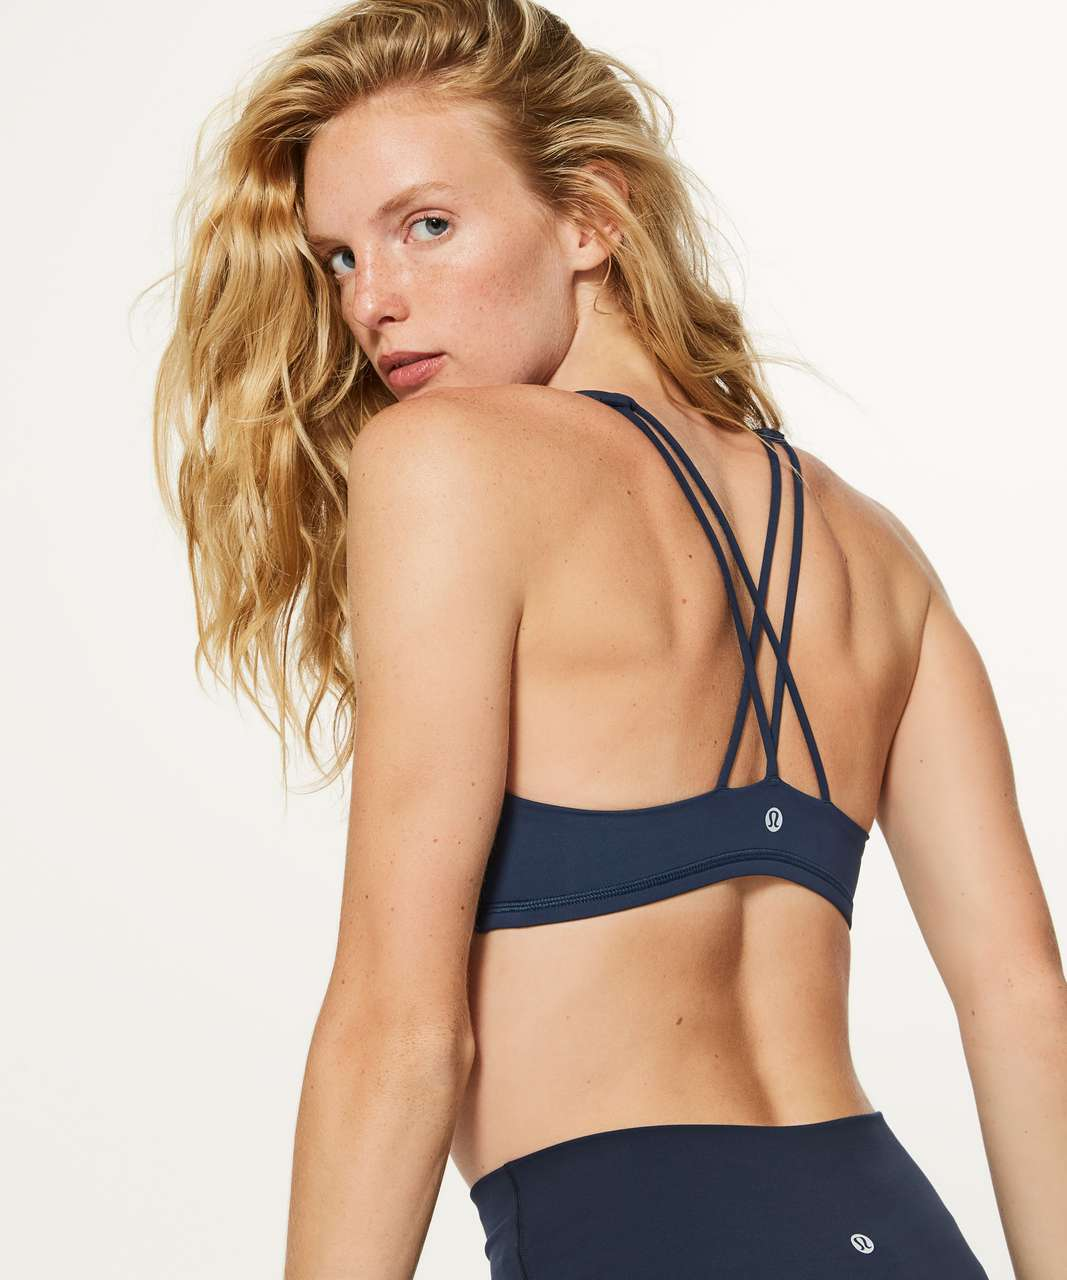 Lululemon Free To Be Bra - Nocturnal Teal